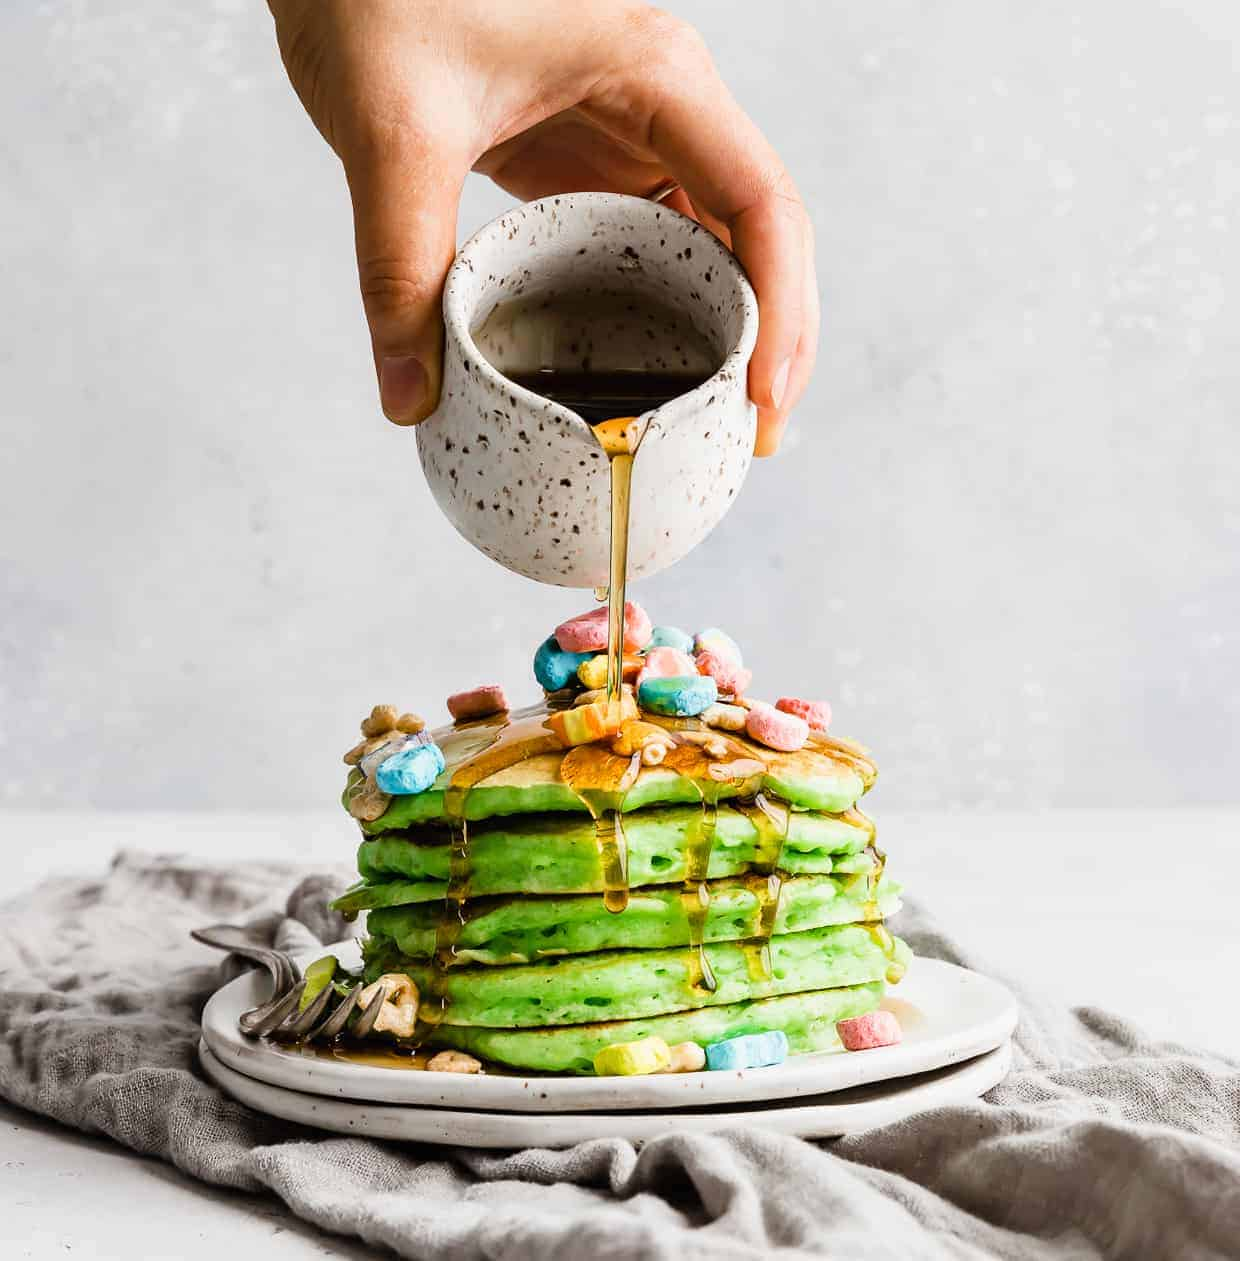 A hand pouring maple syrup over a stack of green pancakes on a white plate.